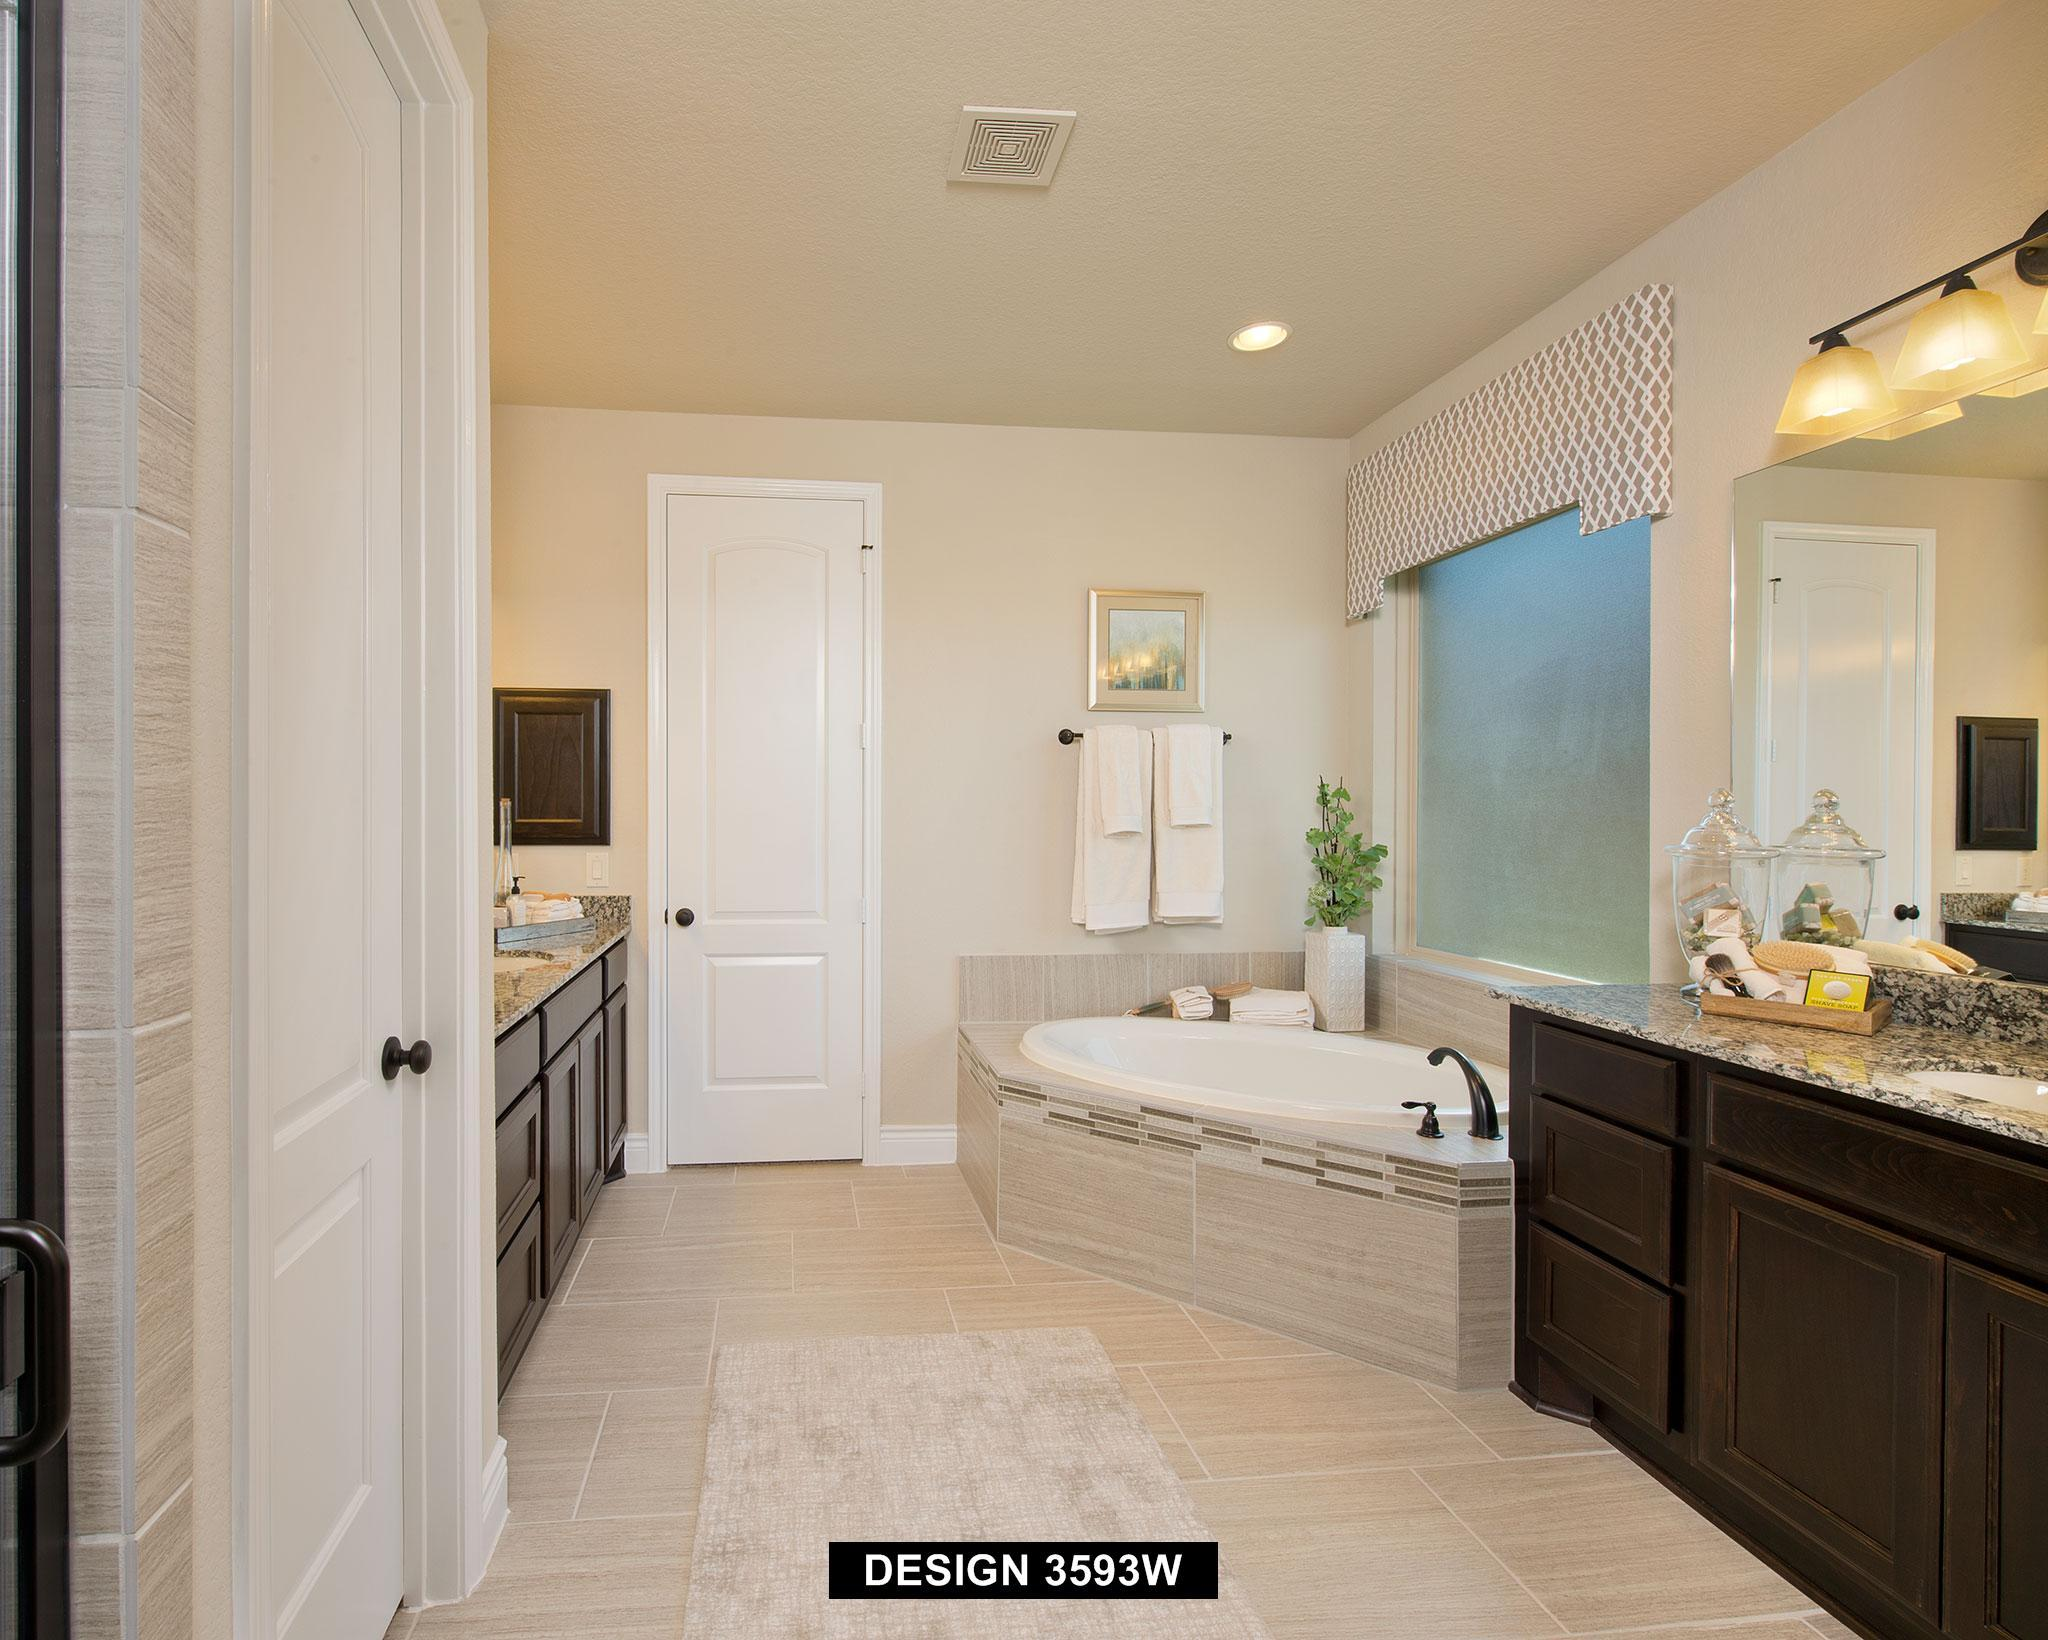 Bathroom featured in the 3593W By Perry Homes in San Antonio, TX